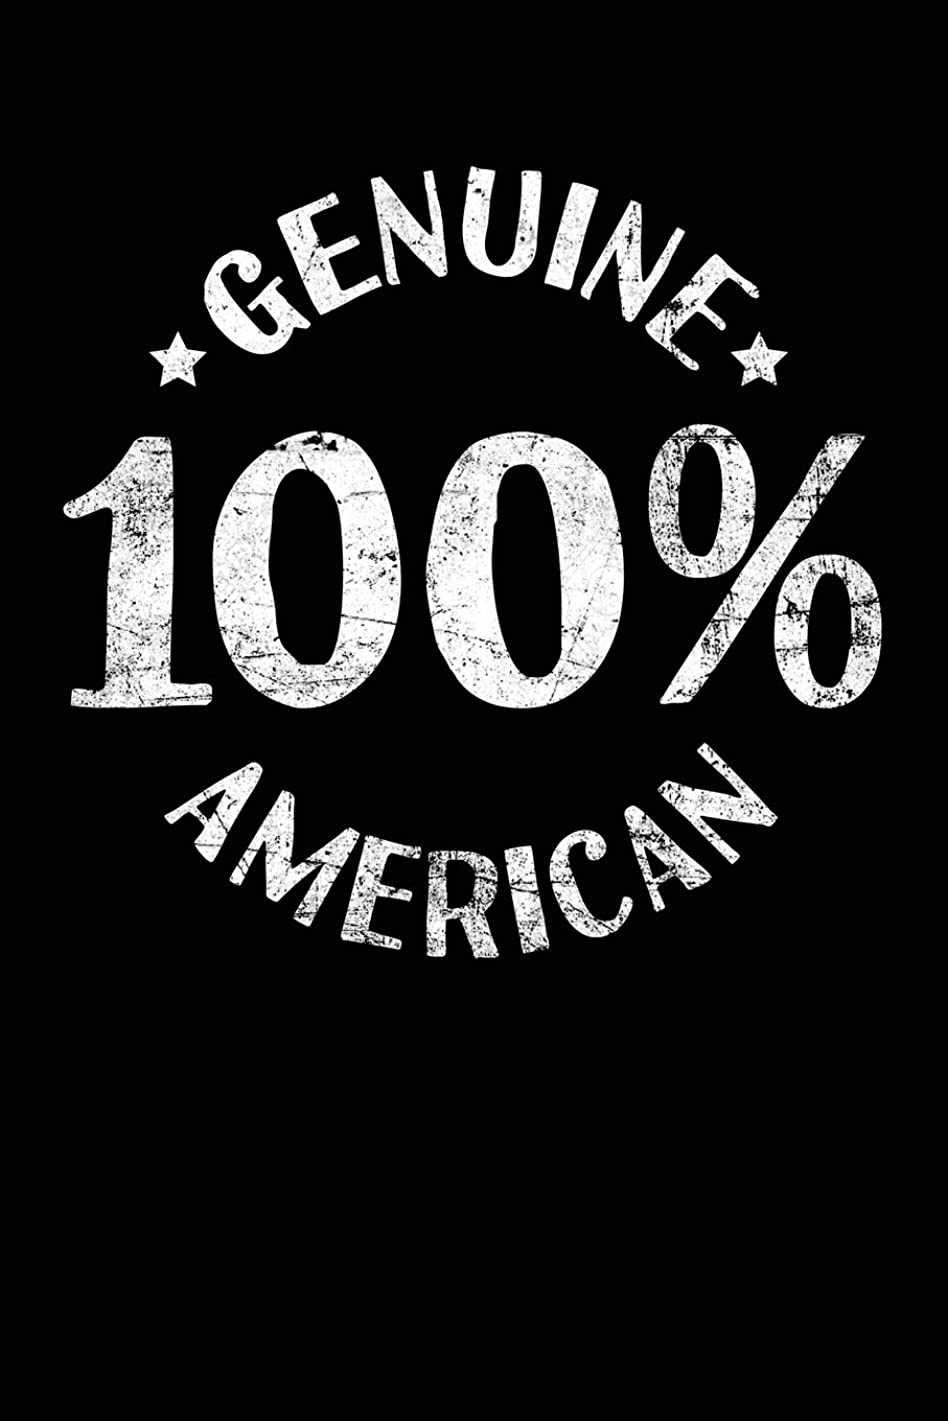 Genuine 100% American: Lined Travel Journal Notebook Diary